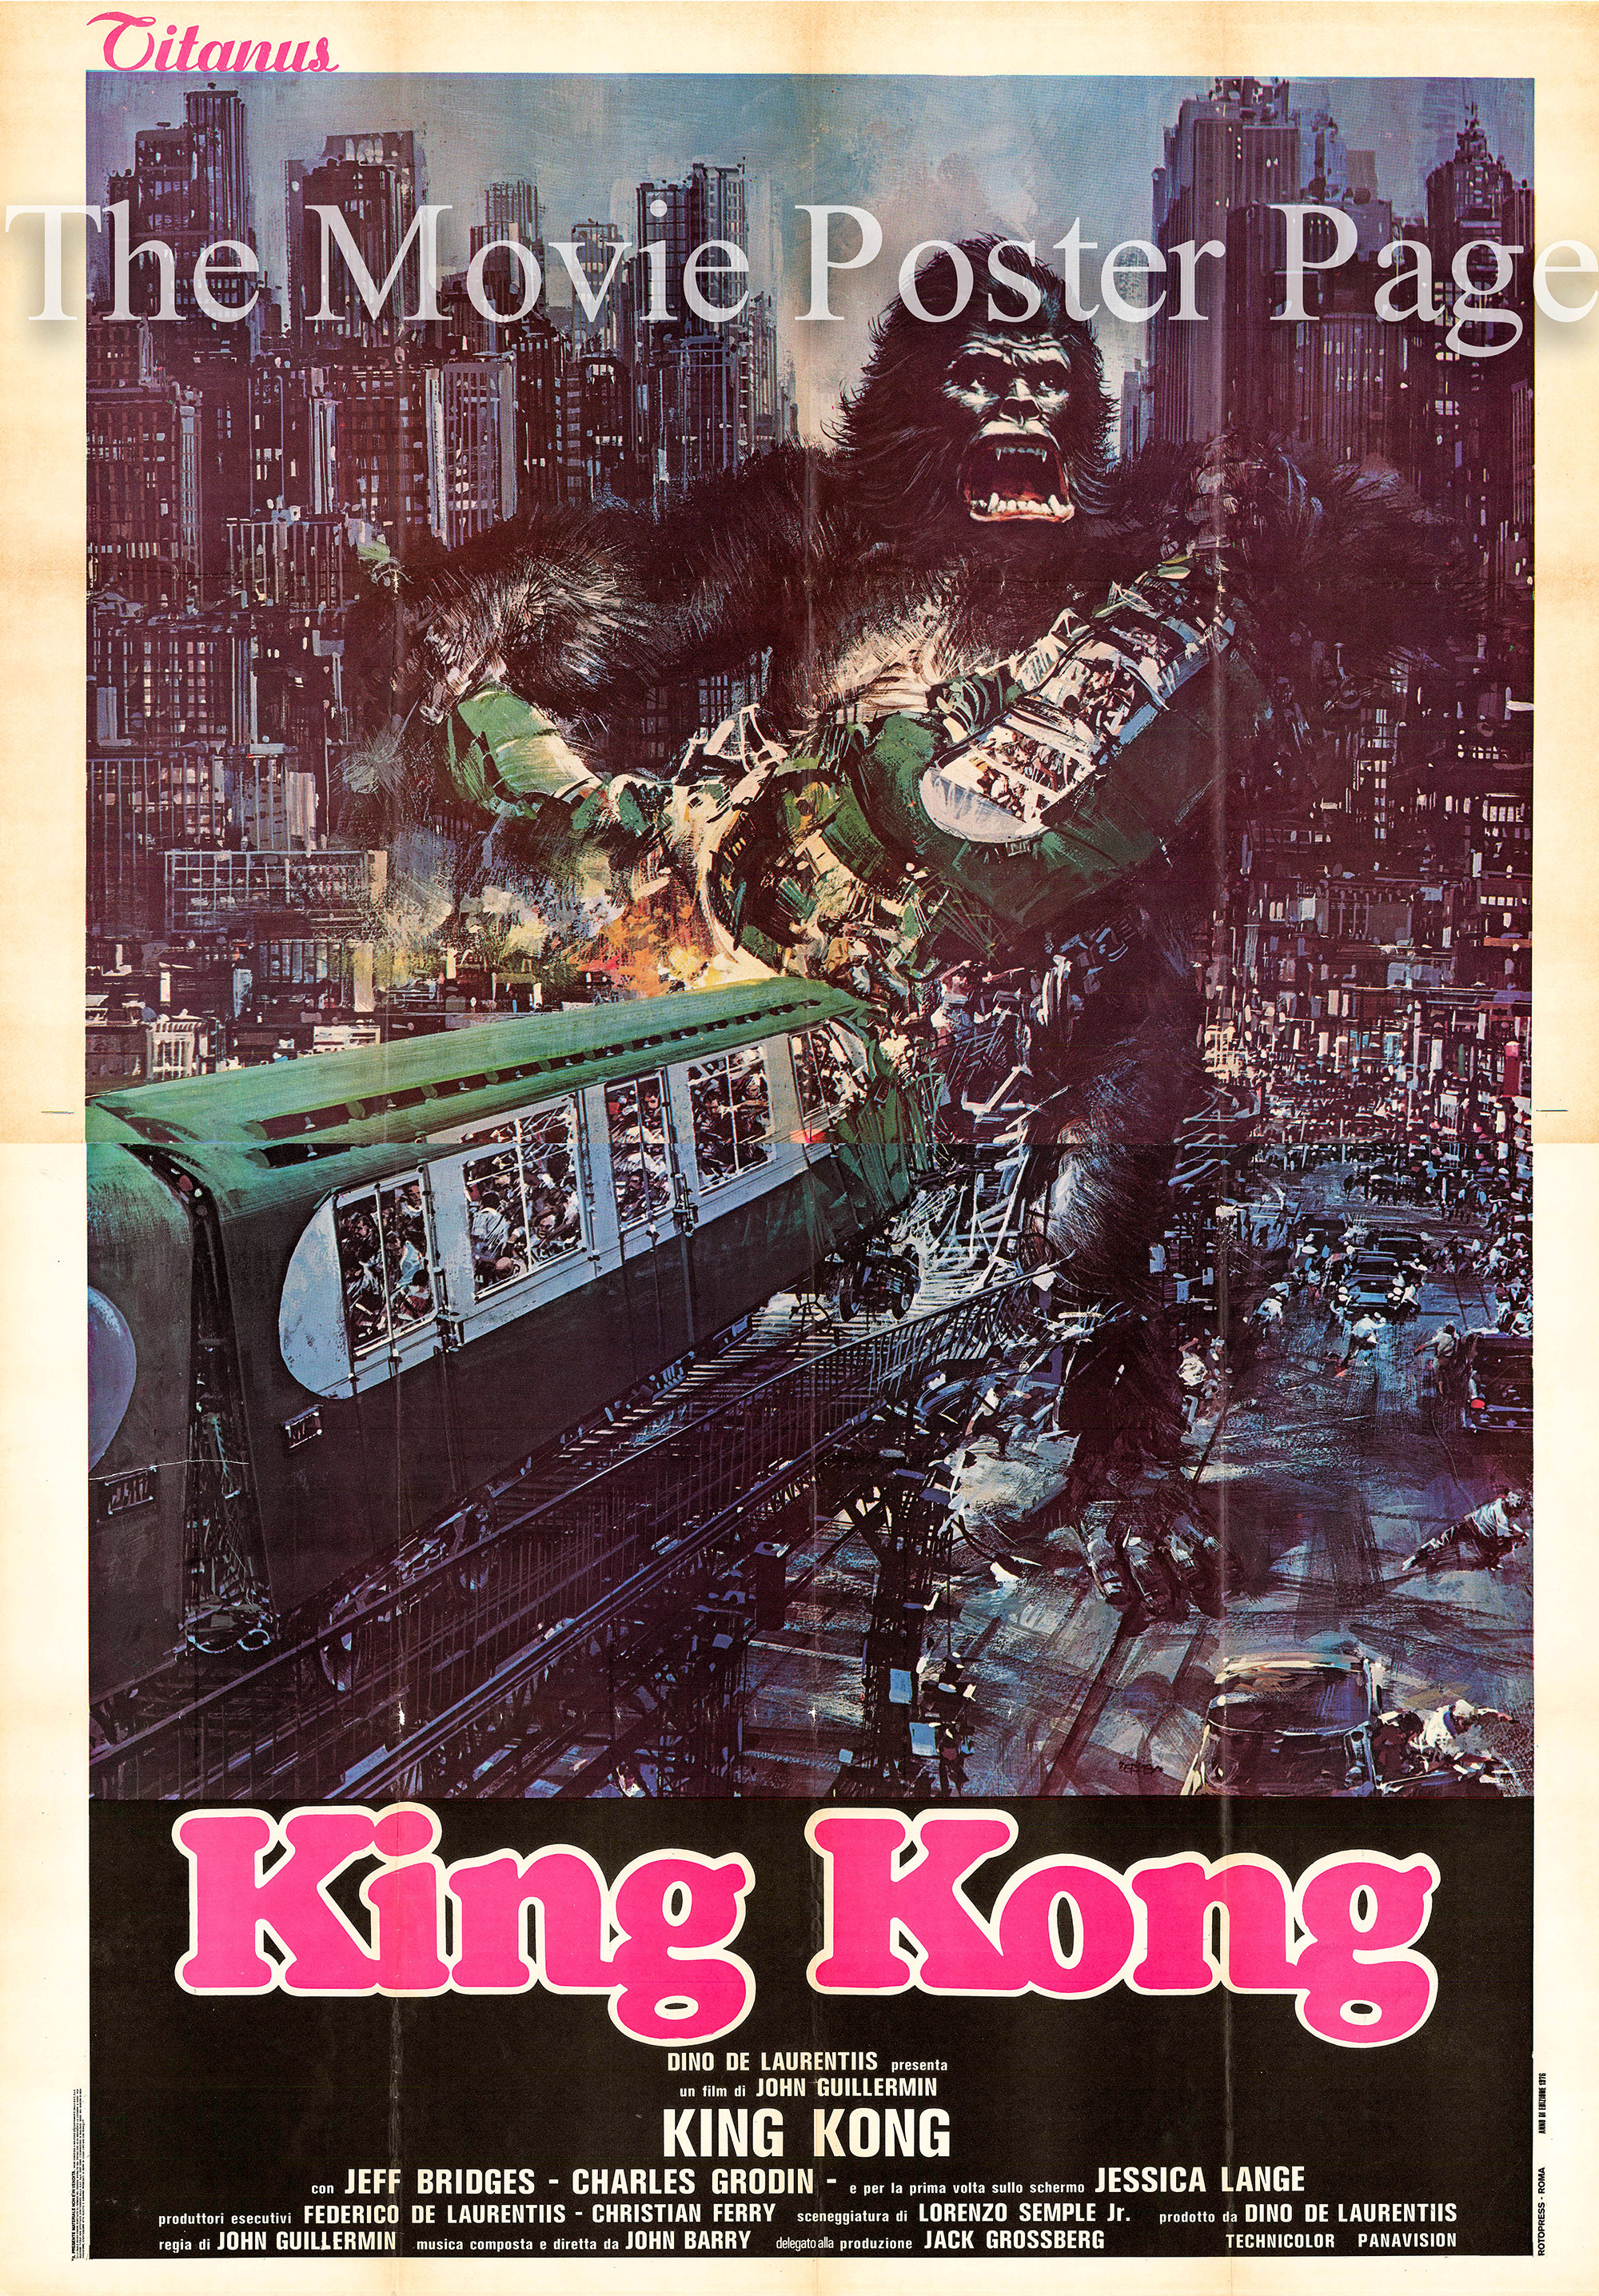 Pictured is an Italian 4-sheet promotional poster for the 1976 John Guillermin film King Kong starring Jeff Bridges and Jessica Lange.